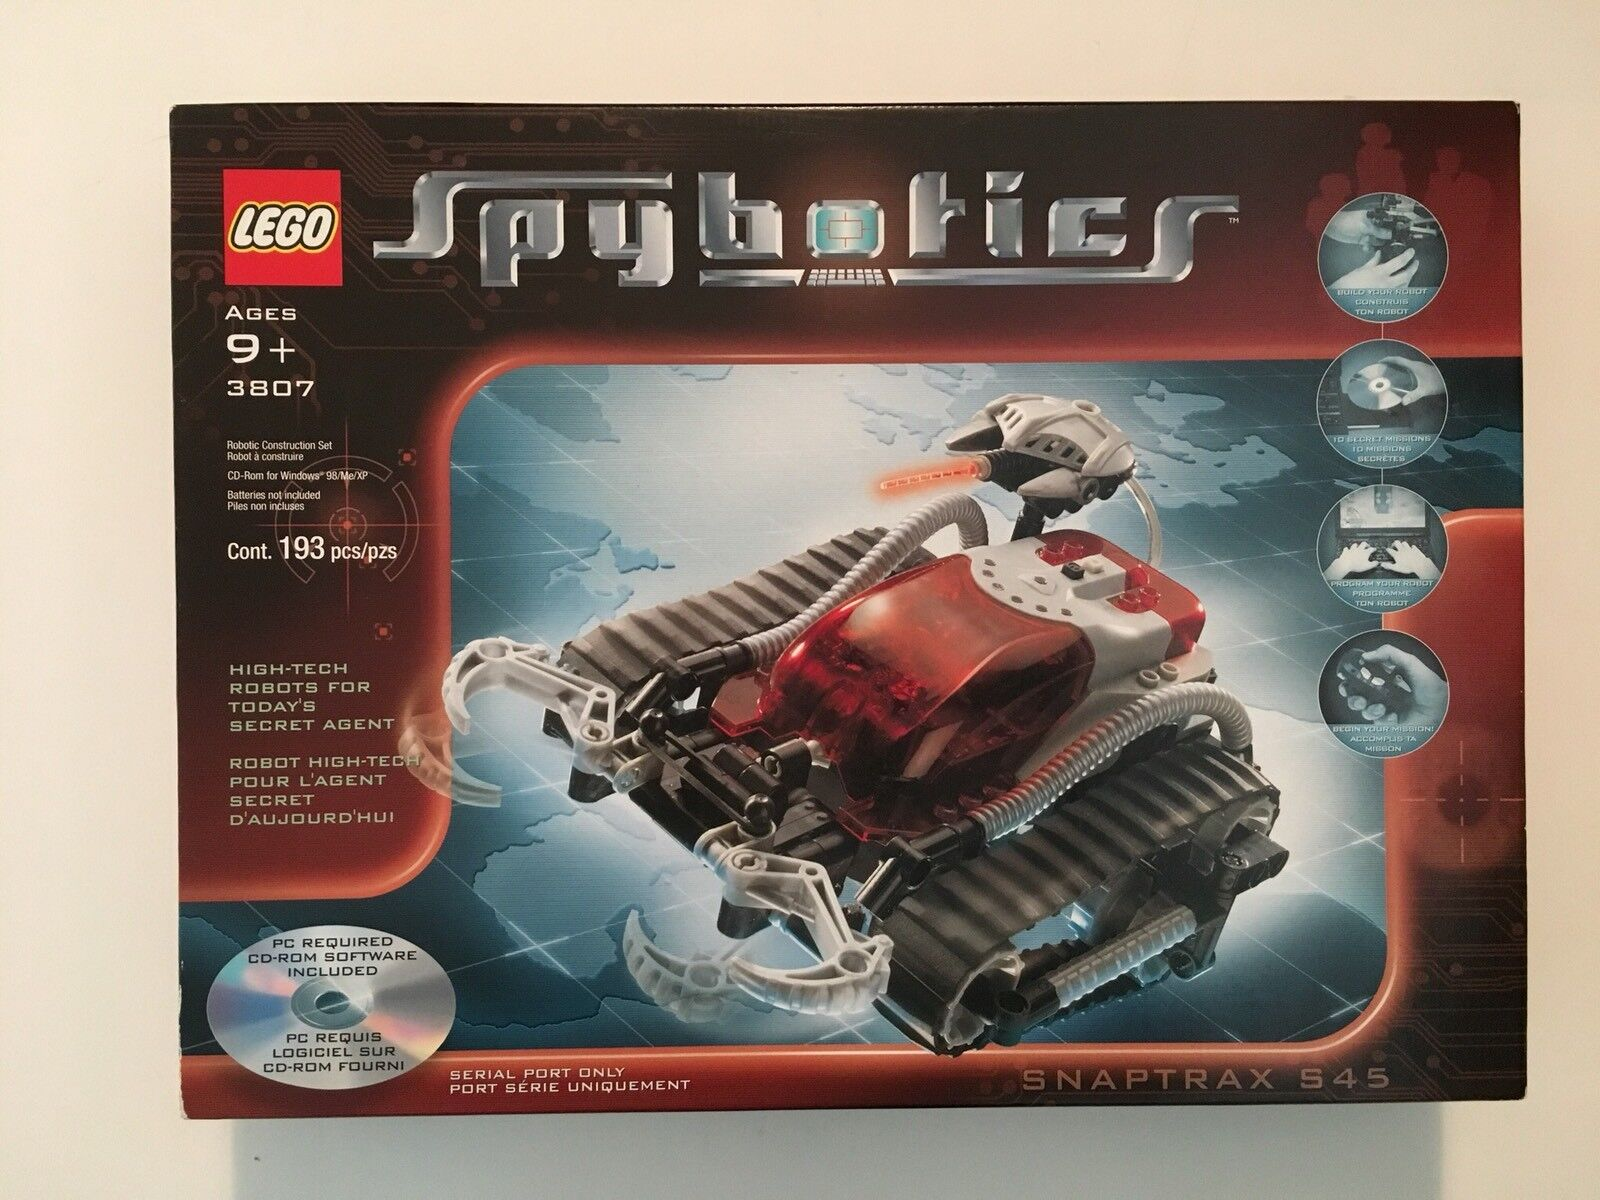 Lego spybotics Snaptrax S45 3807 programmable Robot, New in Box